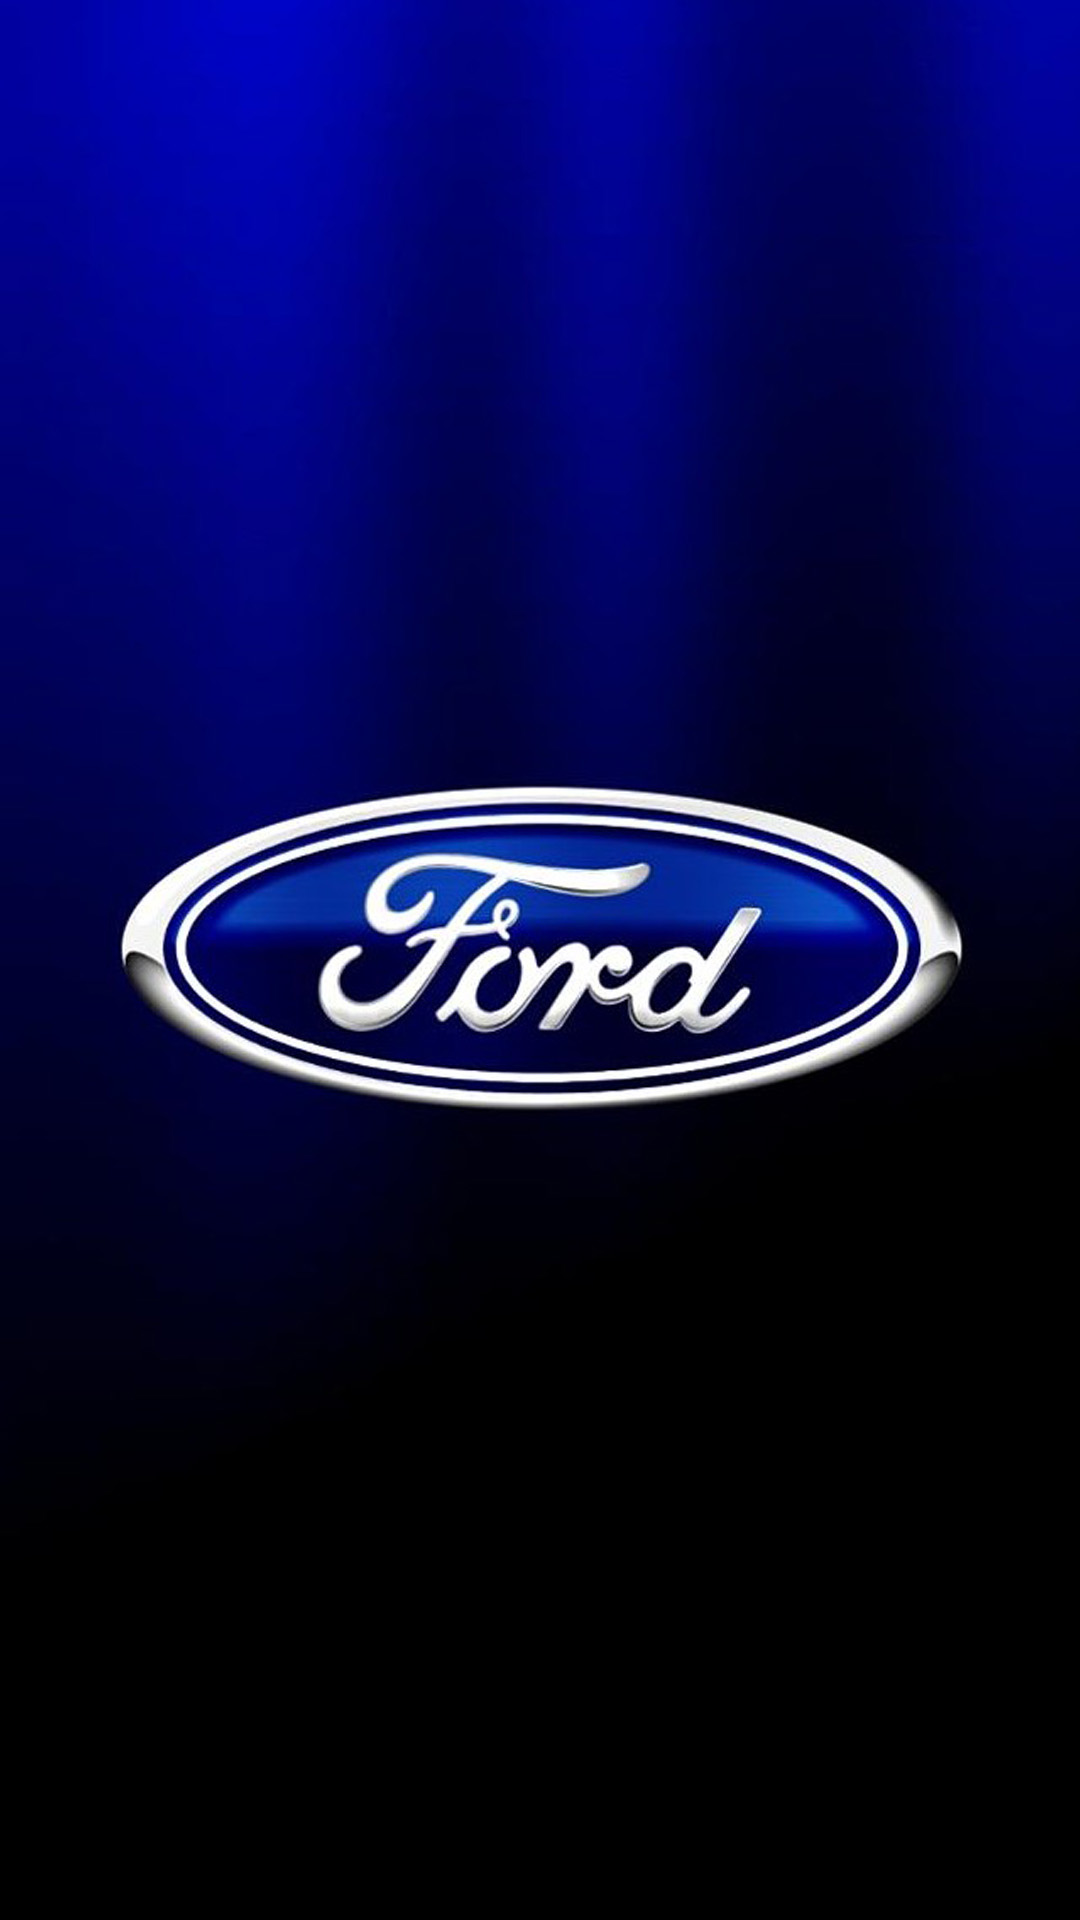 ford mustang logo wallpapers   Quotekocom 1080x1920